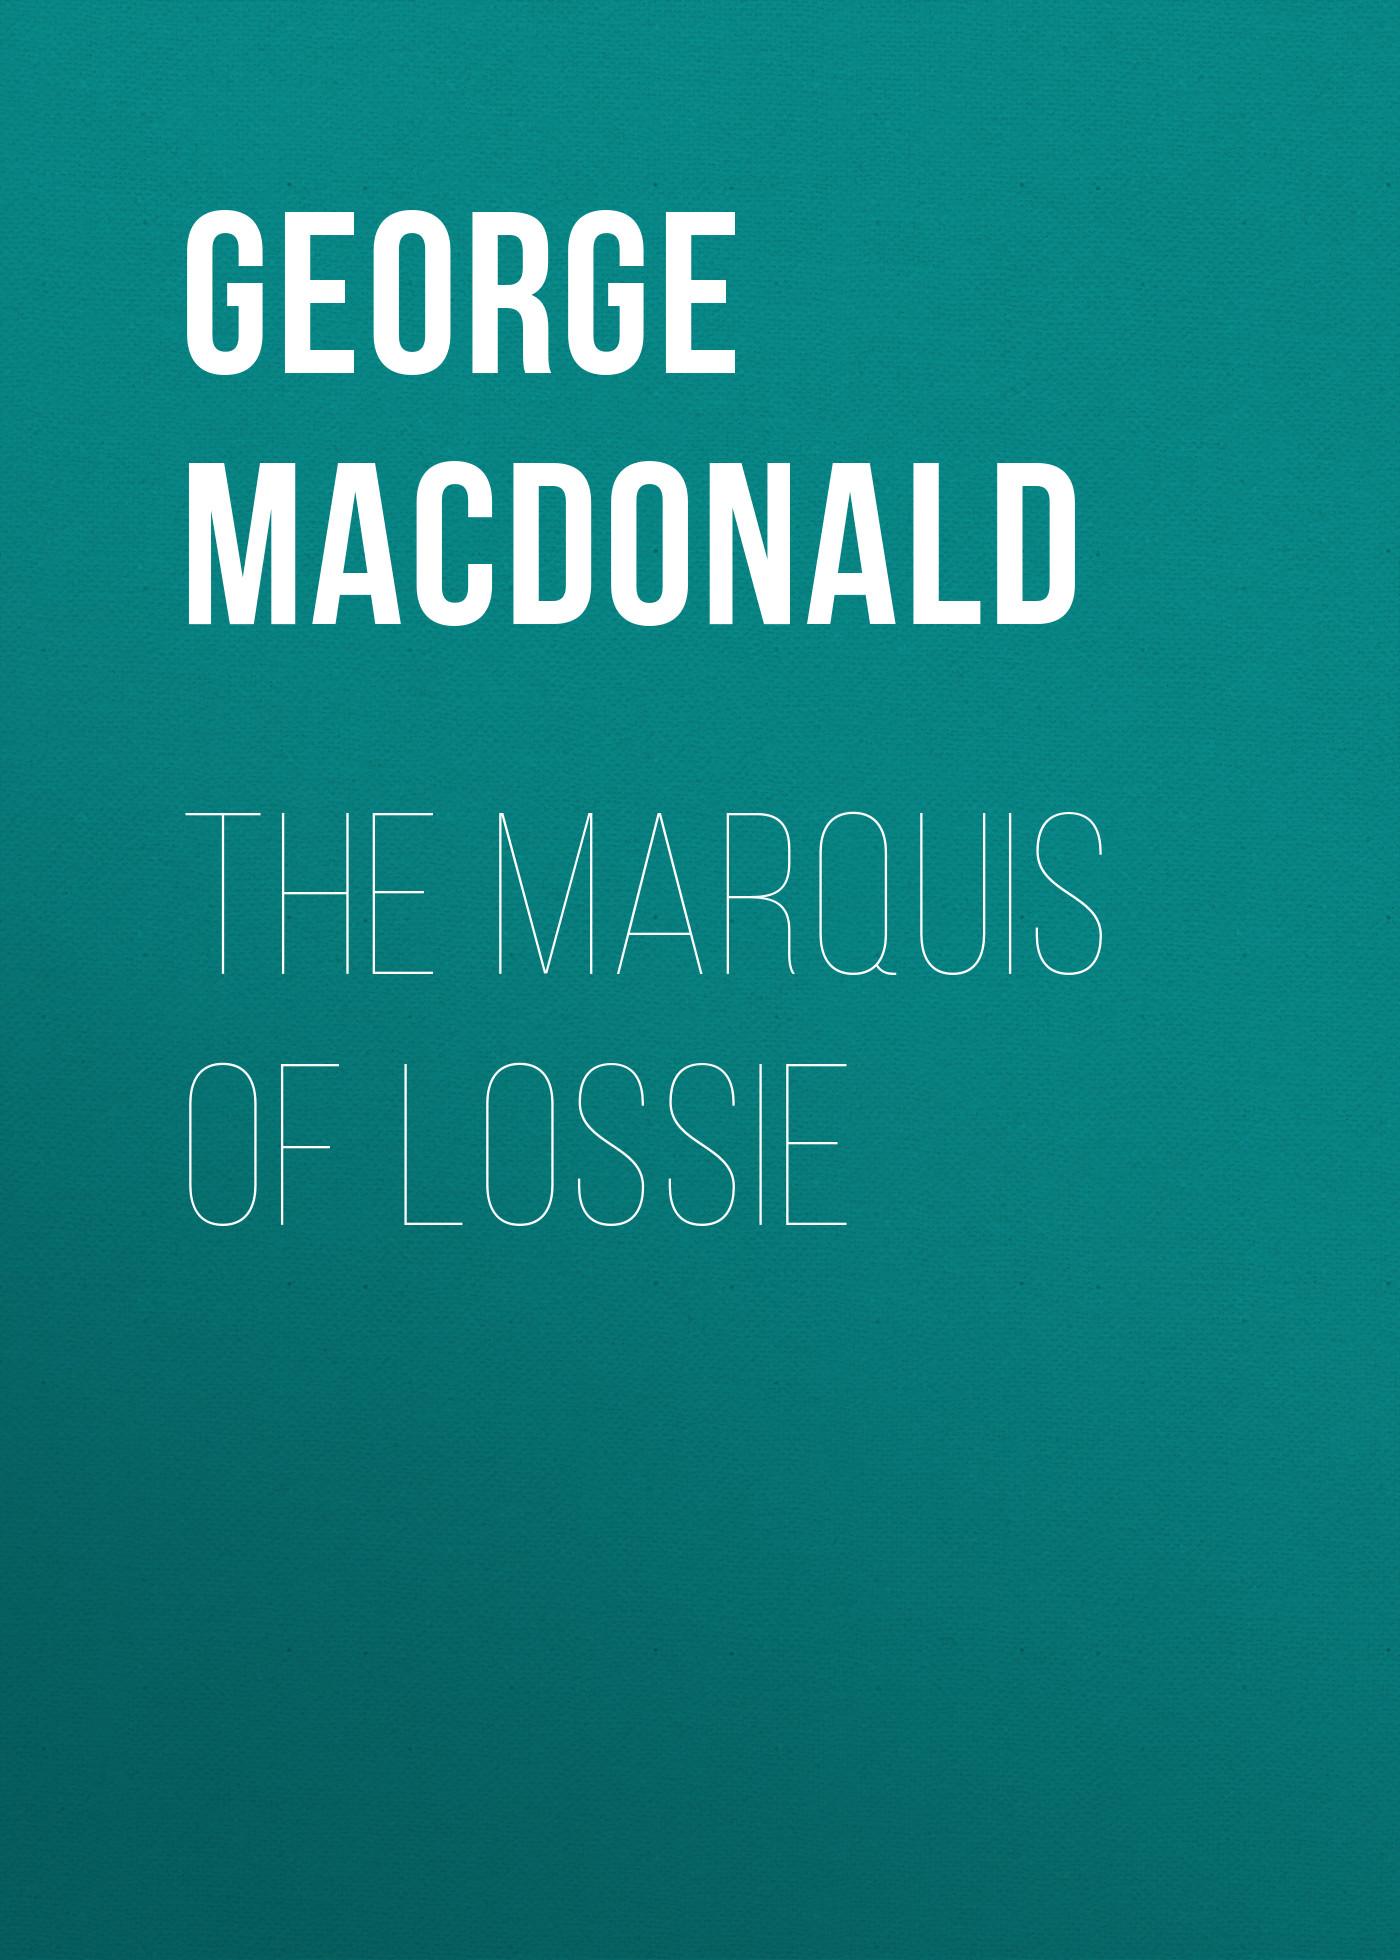 George MacDonald The Marquis of Lossie george macdonald the poetical works of george macdonald in two volumes volume 1